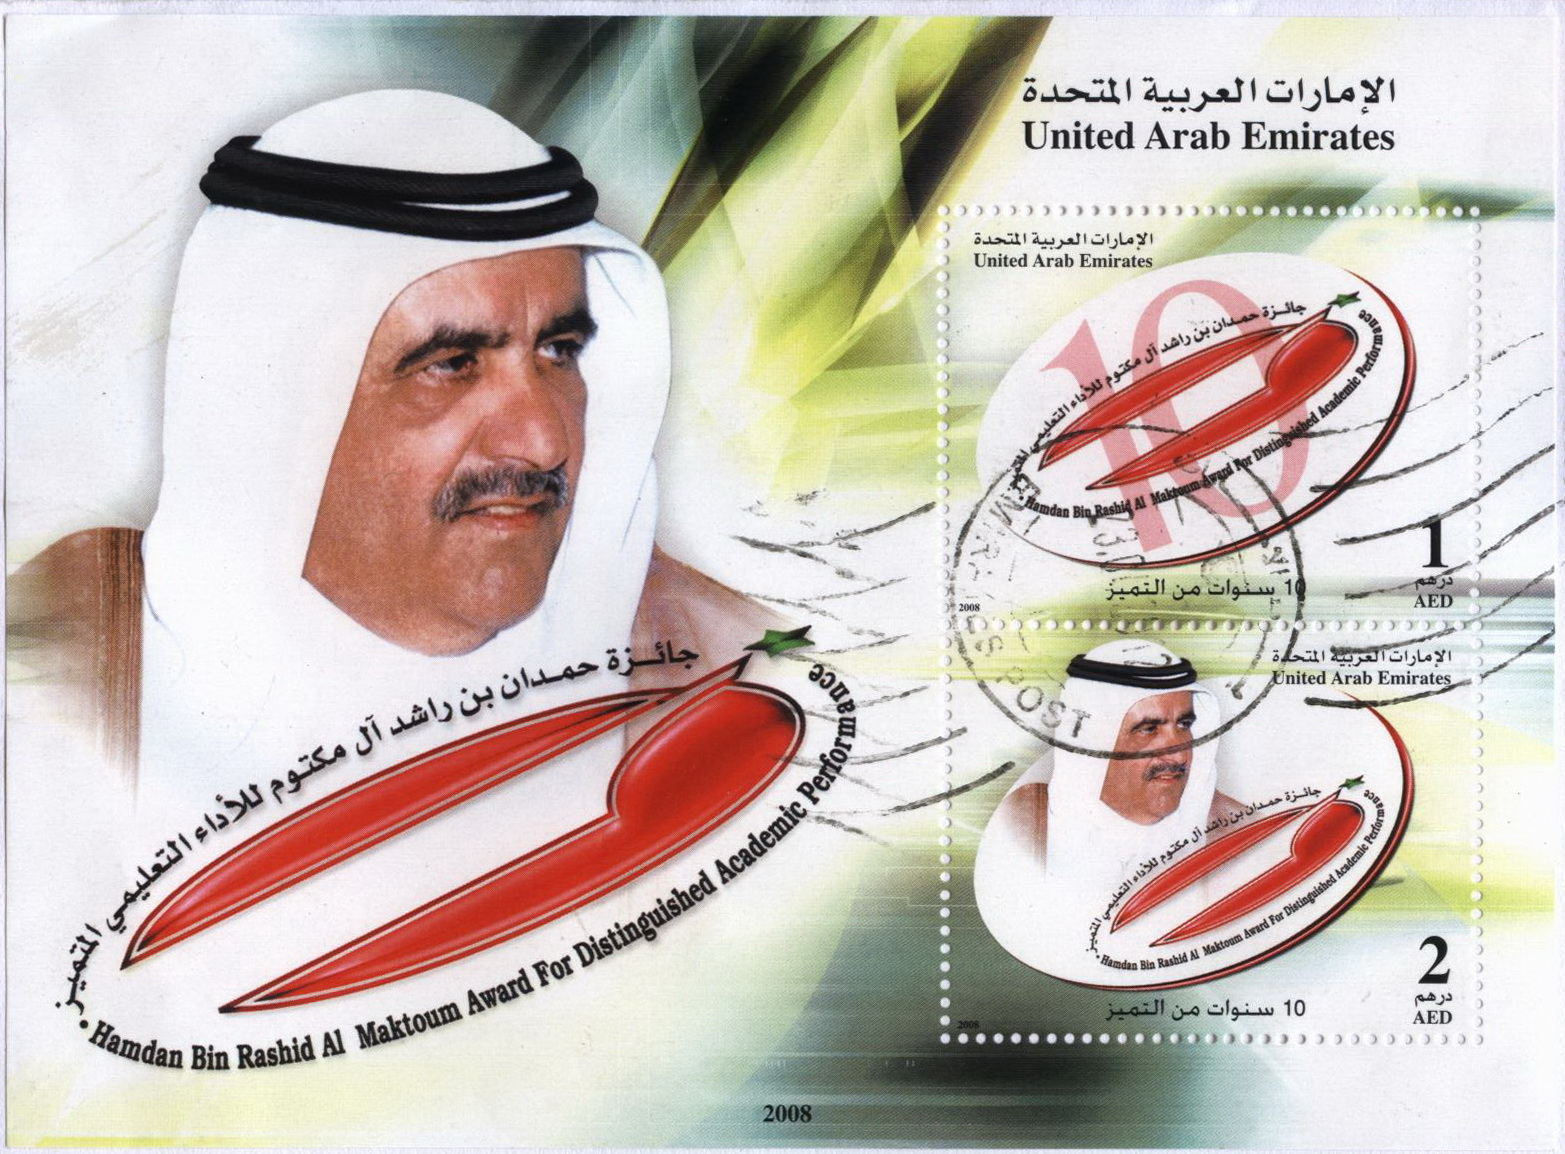 I Love Receiving Mail :): U.E.D._Hamdan Bin Rashid Al